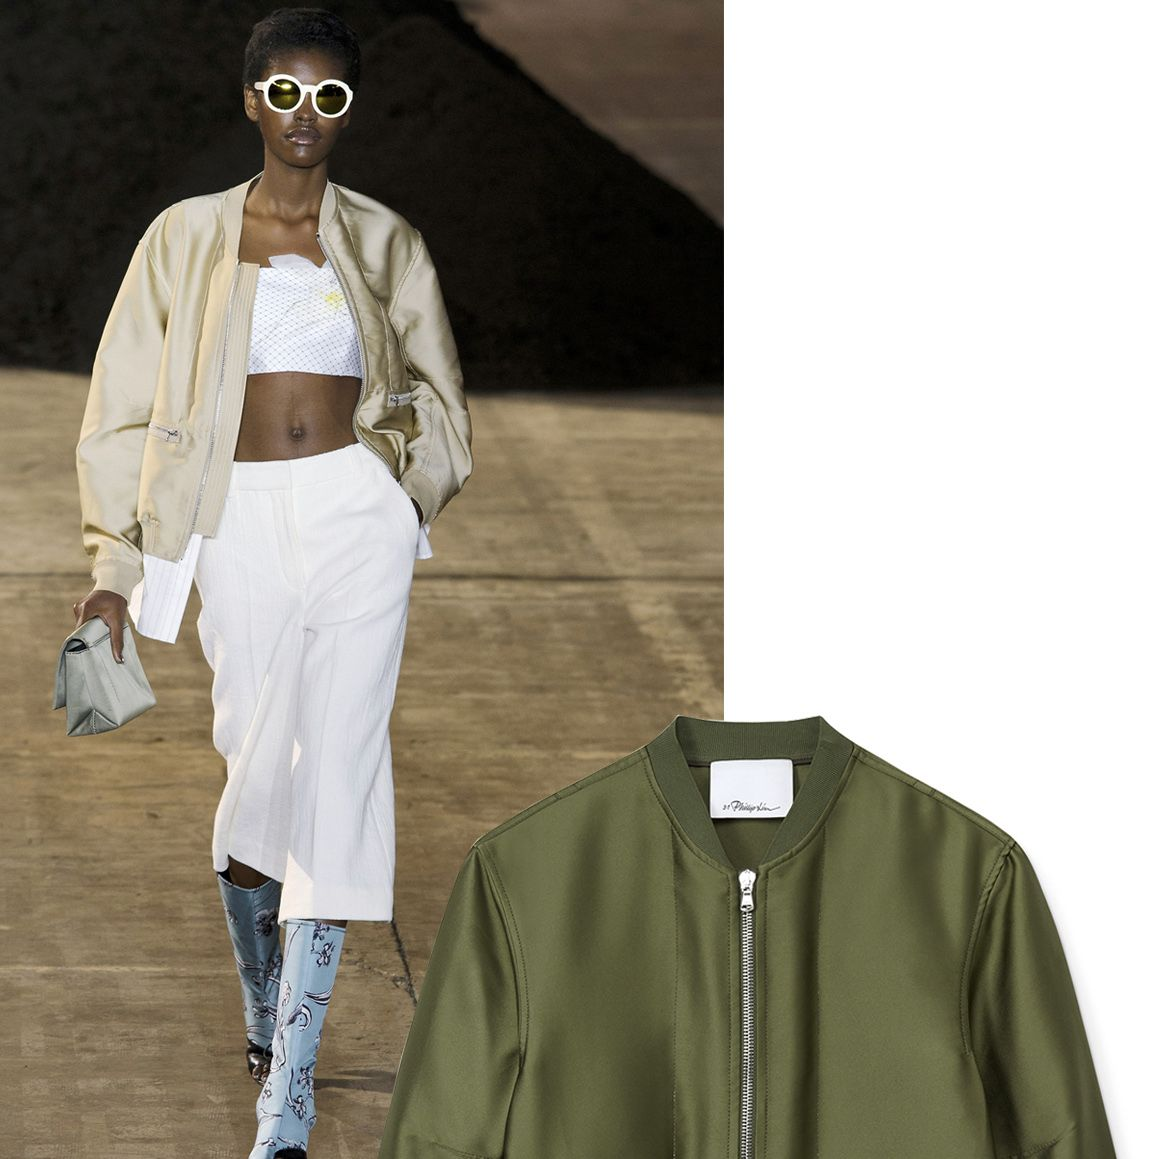 """<p>""""For spring 2016, the design team and I explored the past, present and future of the brand's DNA which has always been 'youthful elegance'.""""—Phillip Lim </p><p>        <em><strong>3.1 Phillip Lim</strong> jacket, $850, <strong><a href=""""https://shop.harpersbazaar.com/designers/0-9/31-phillip-lim/tromp-loeil-bomber-jacket-8428.html"""" target=""""_blank"""">shopBAZAAR.com</a></strong></em><span class=""""redactor-invisible-space""""><em>.</em><br></span></p>"""